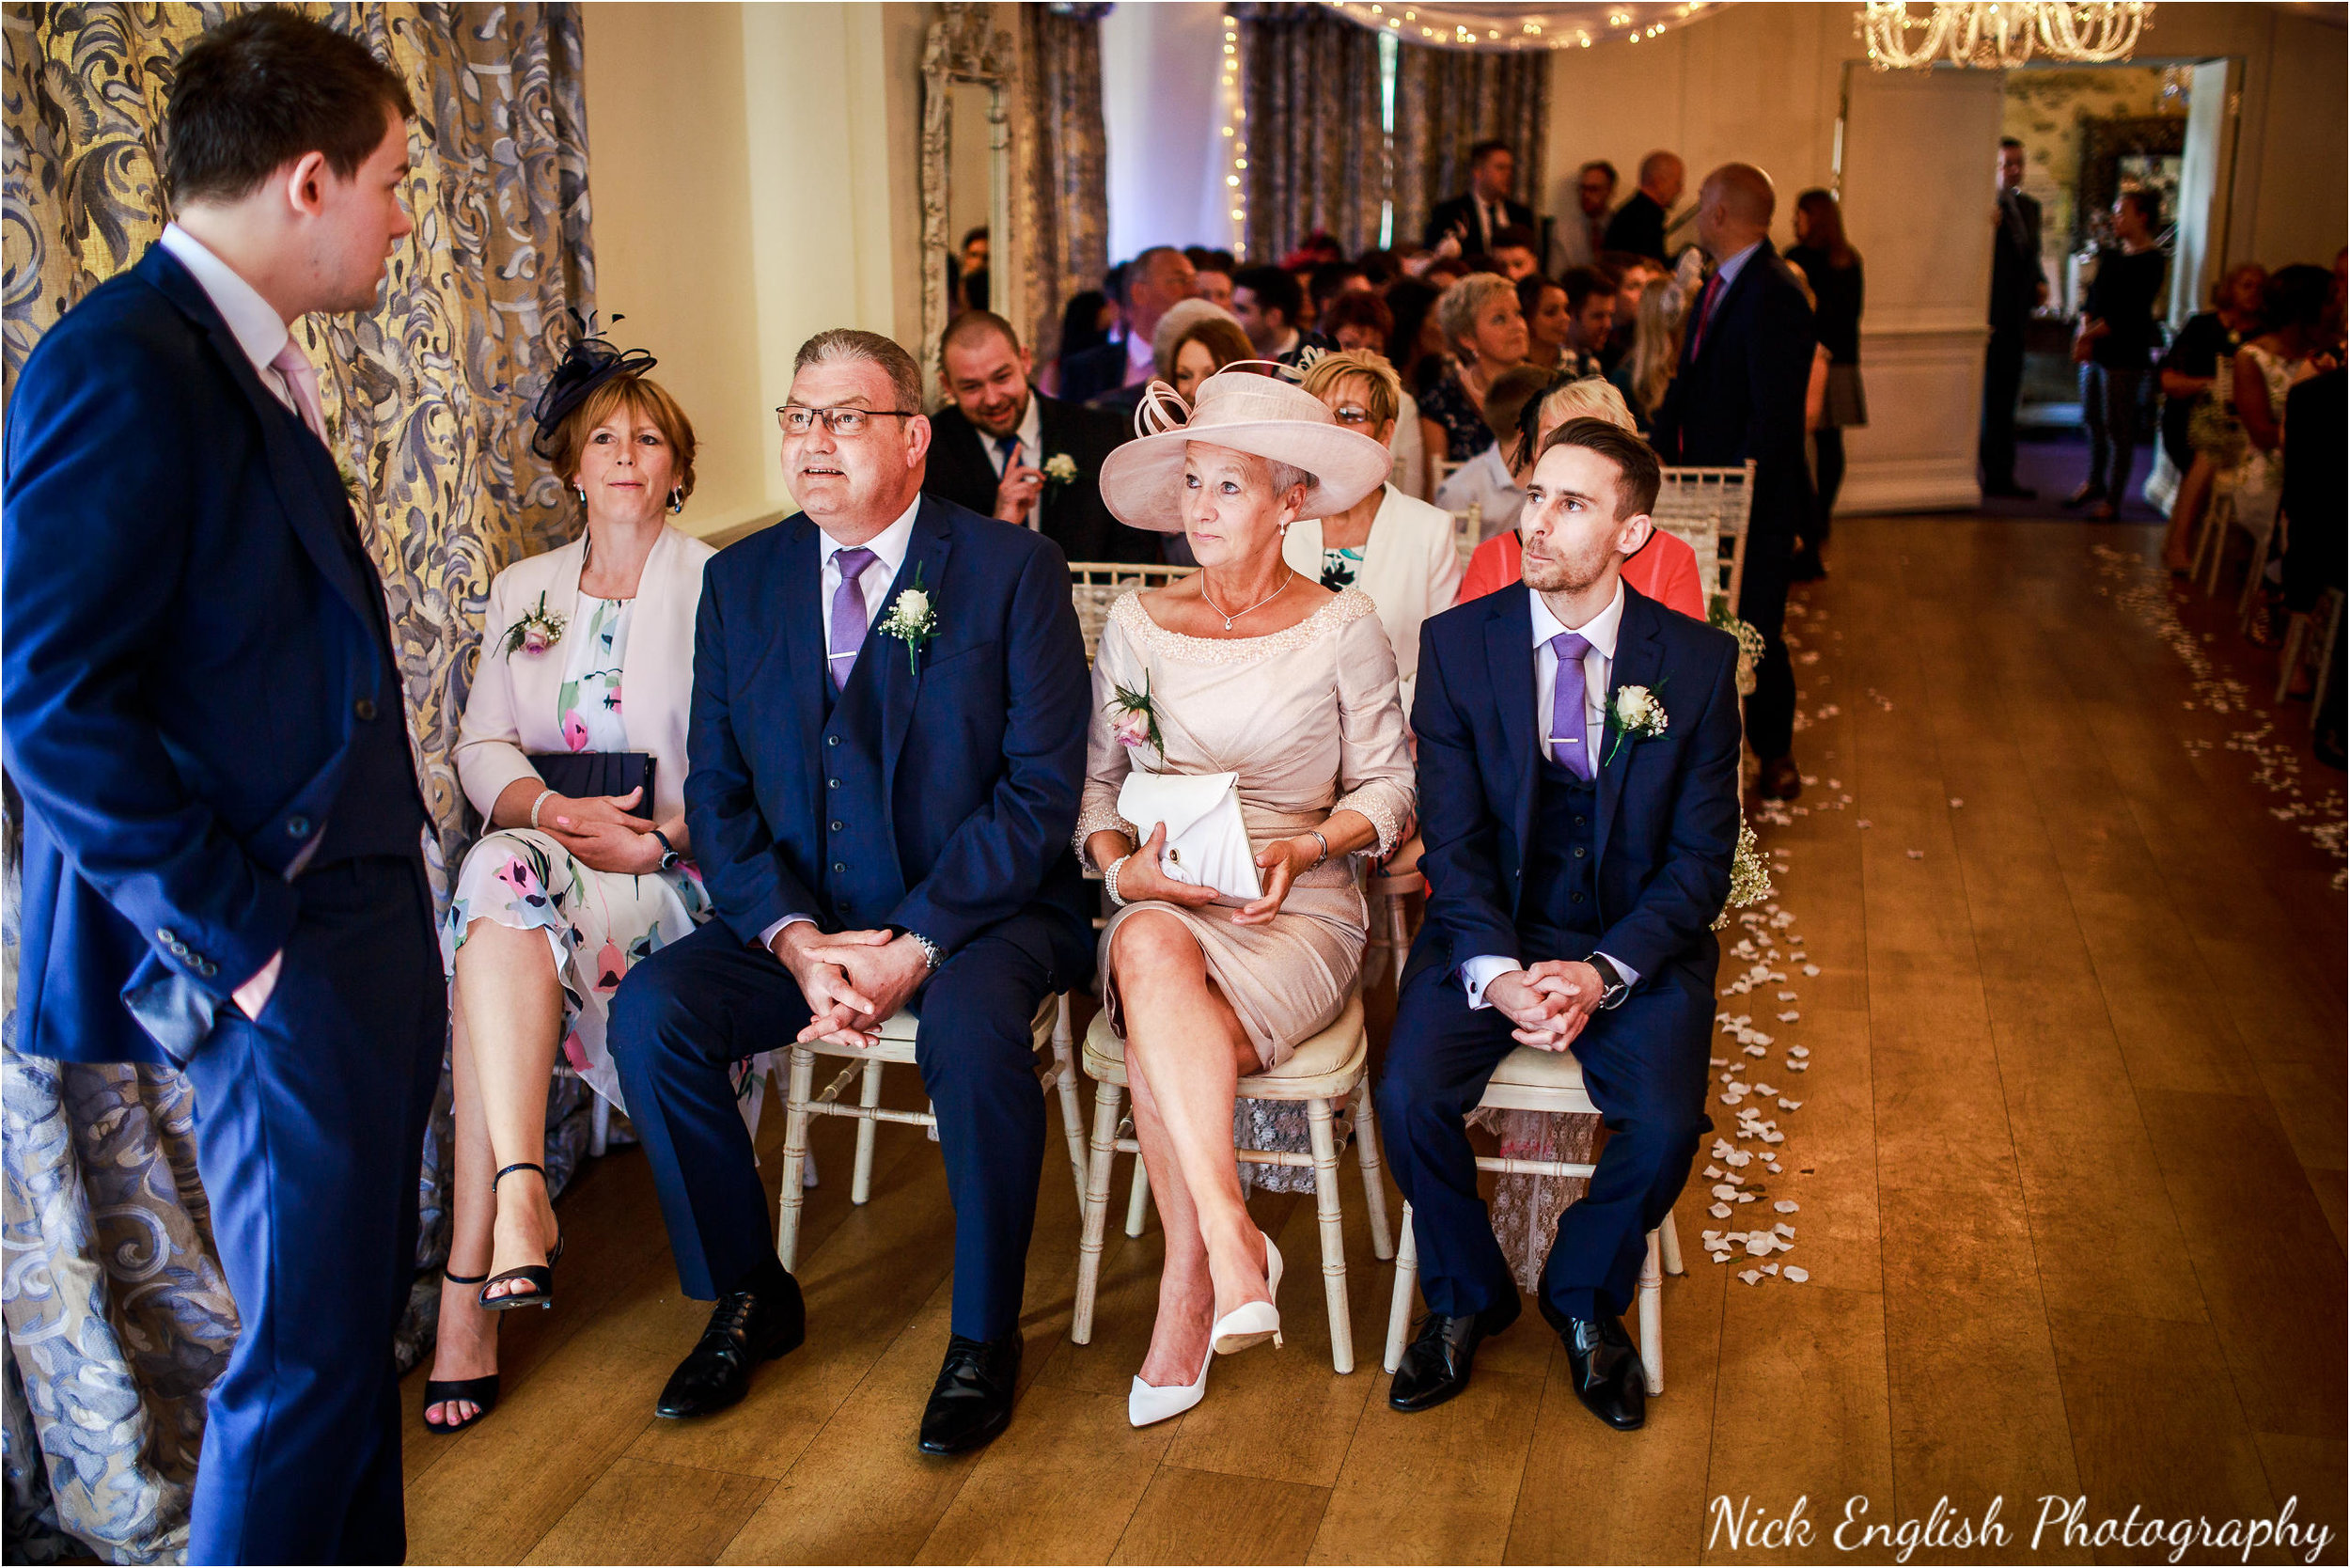 Alison James Wedding Photographs at Eaves Hall West Bradford 81jpg.jpeg